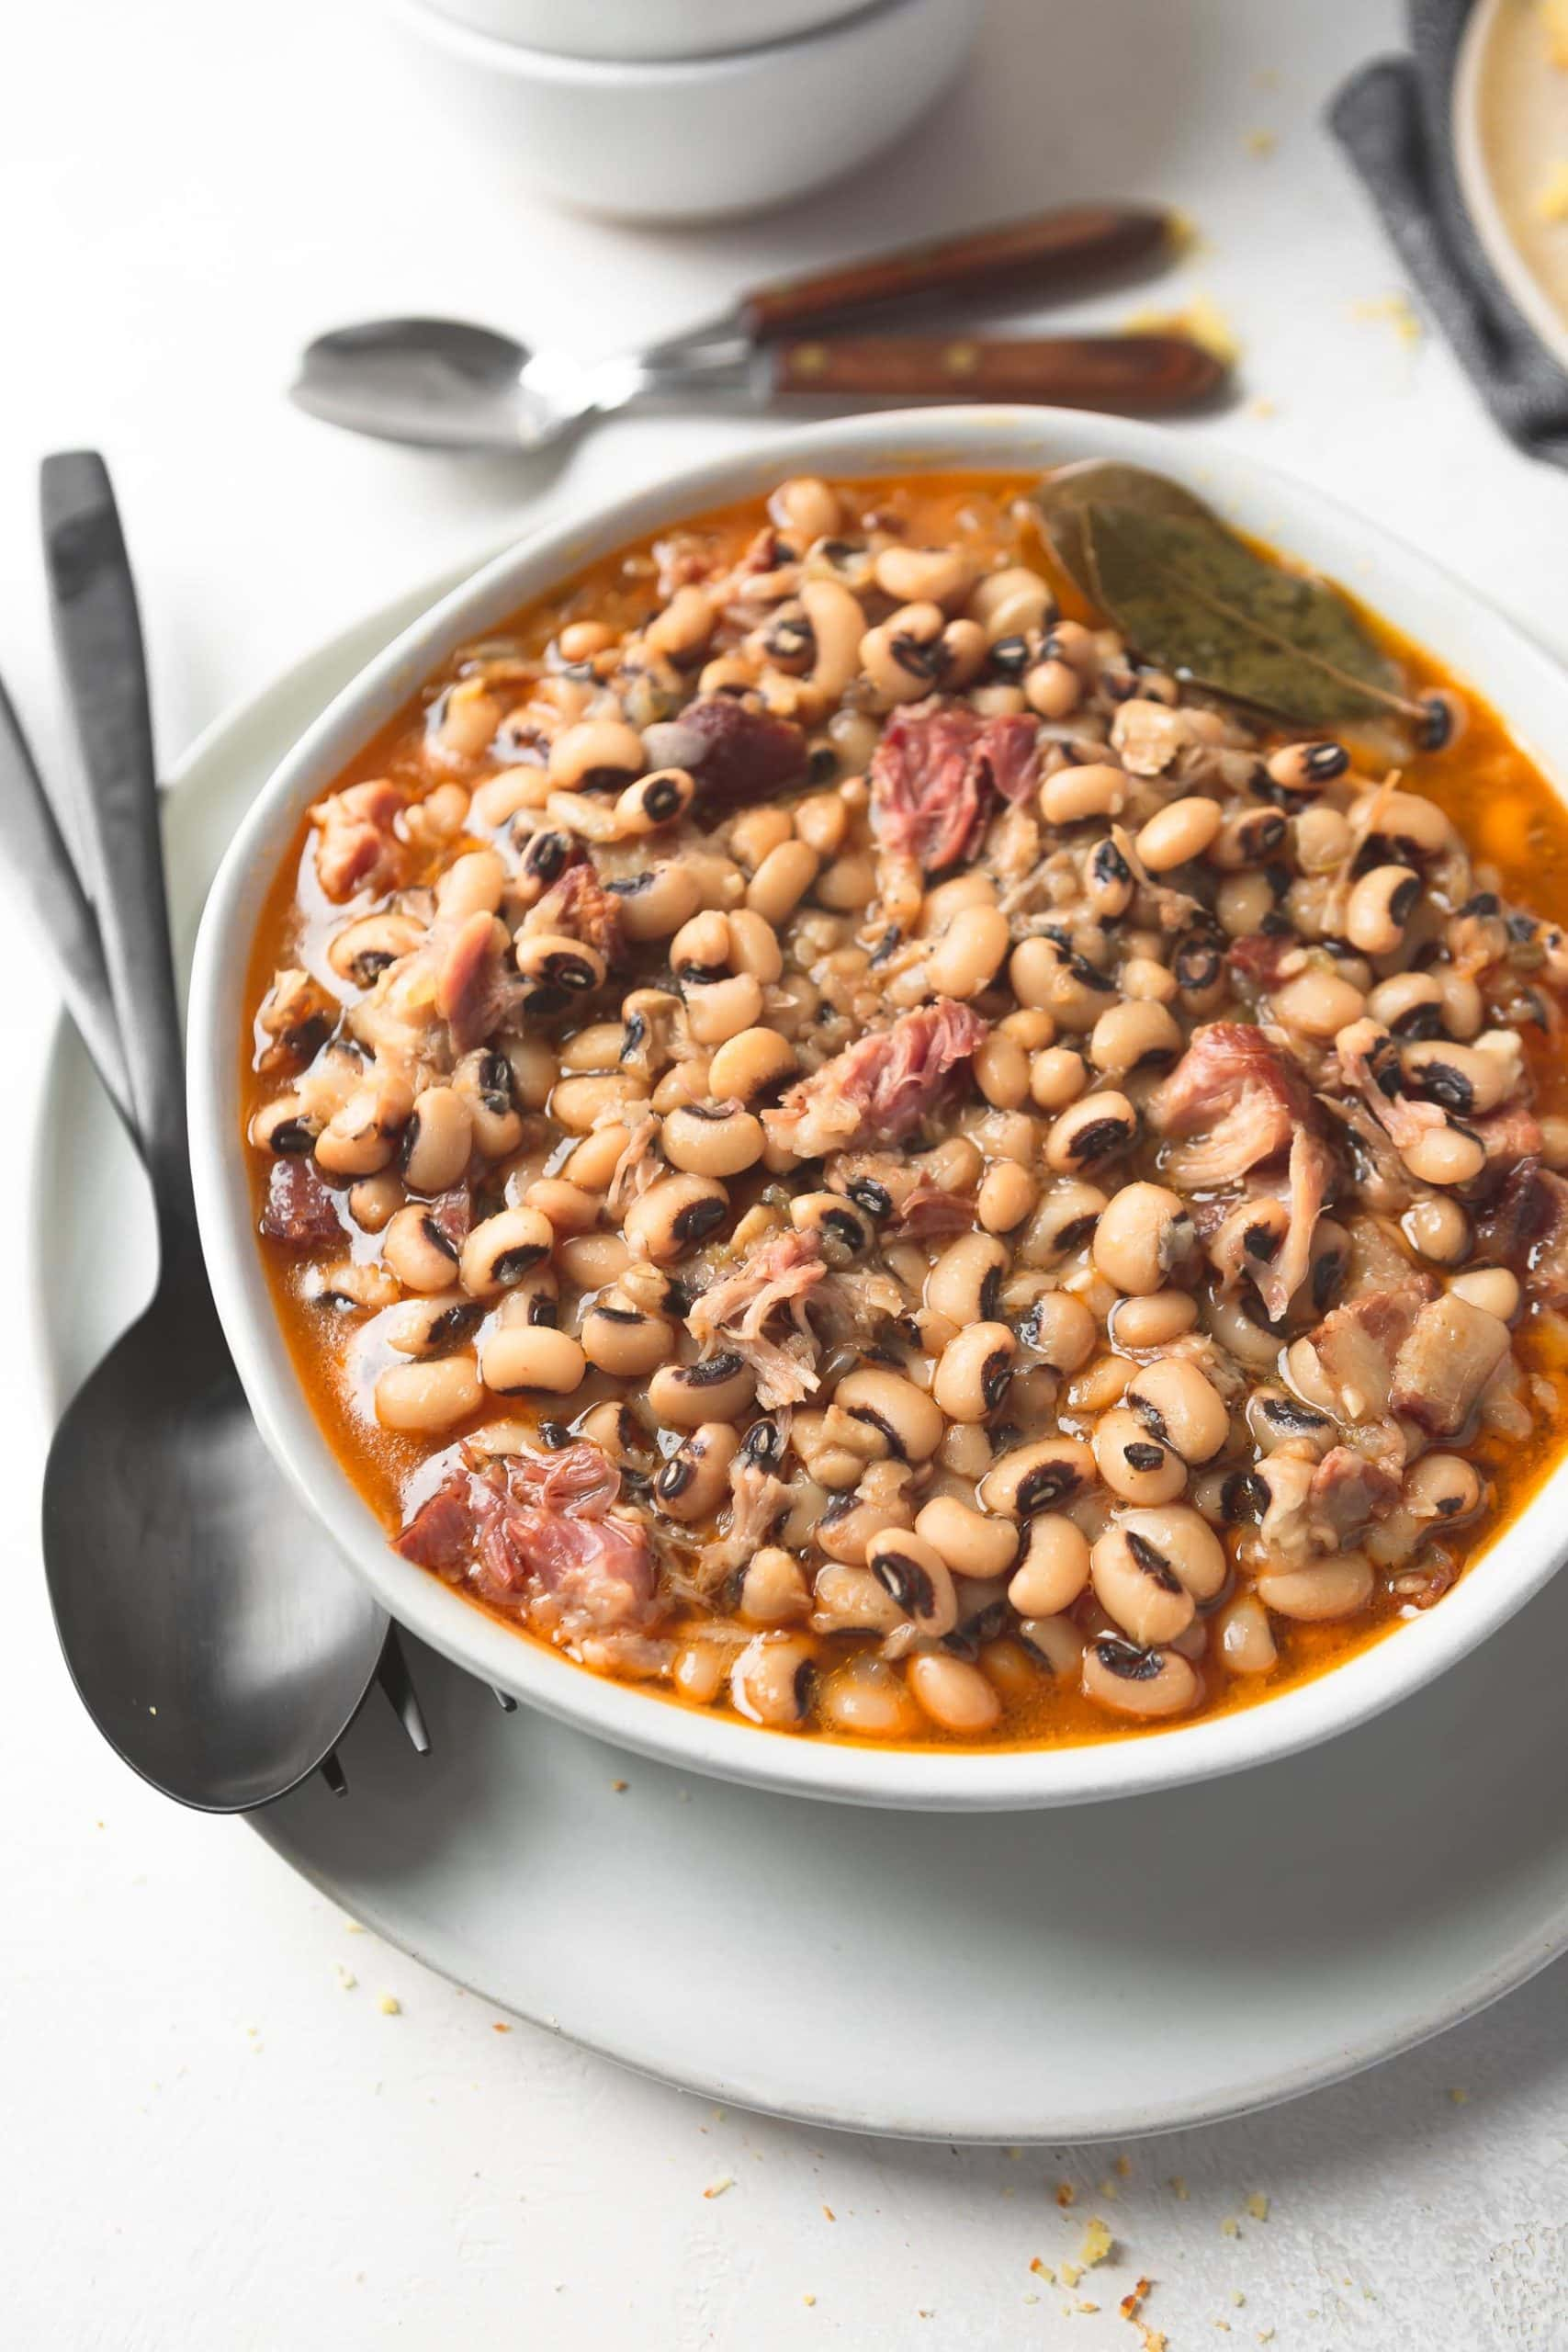 A bowl of southern black eyed peas. A spoon and fork are sitting next to the bowl.